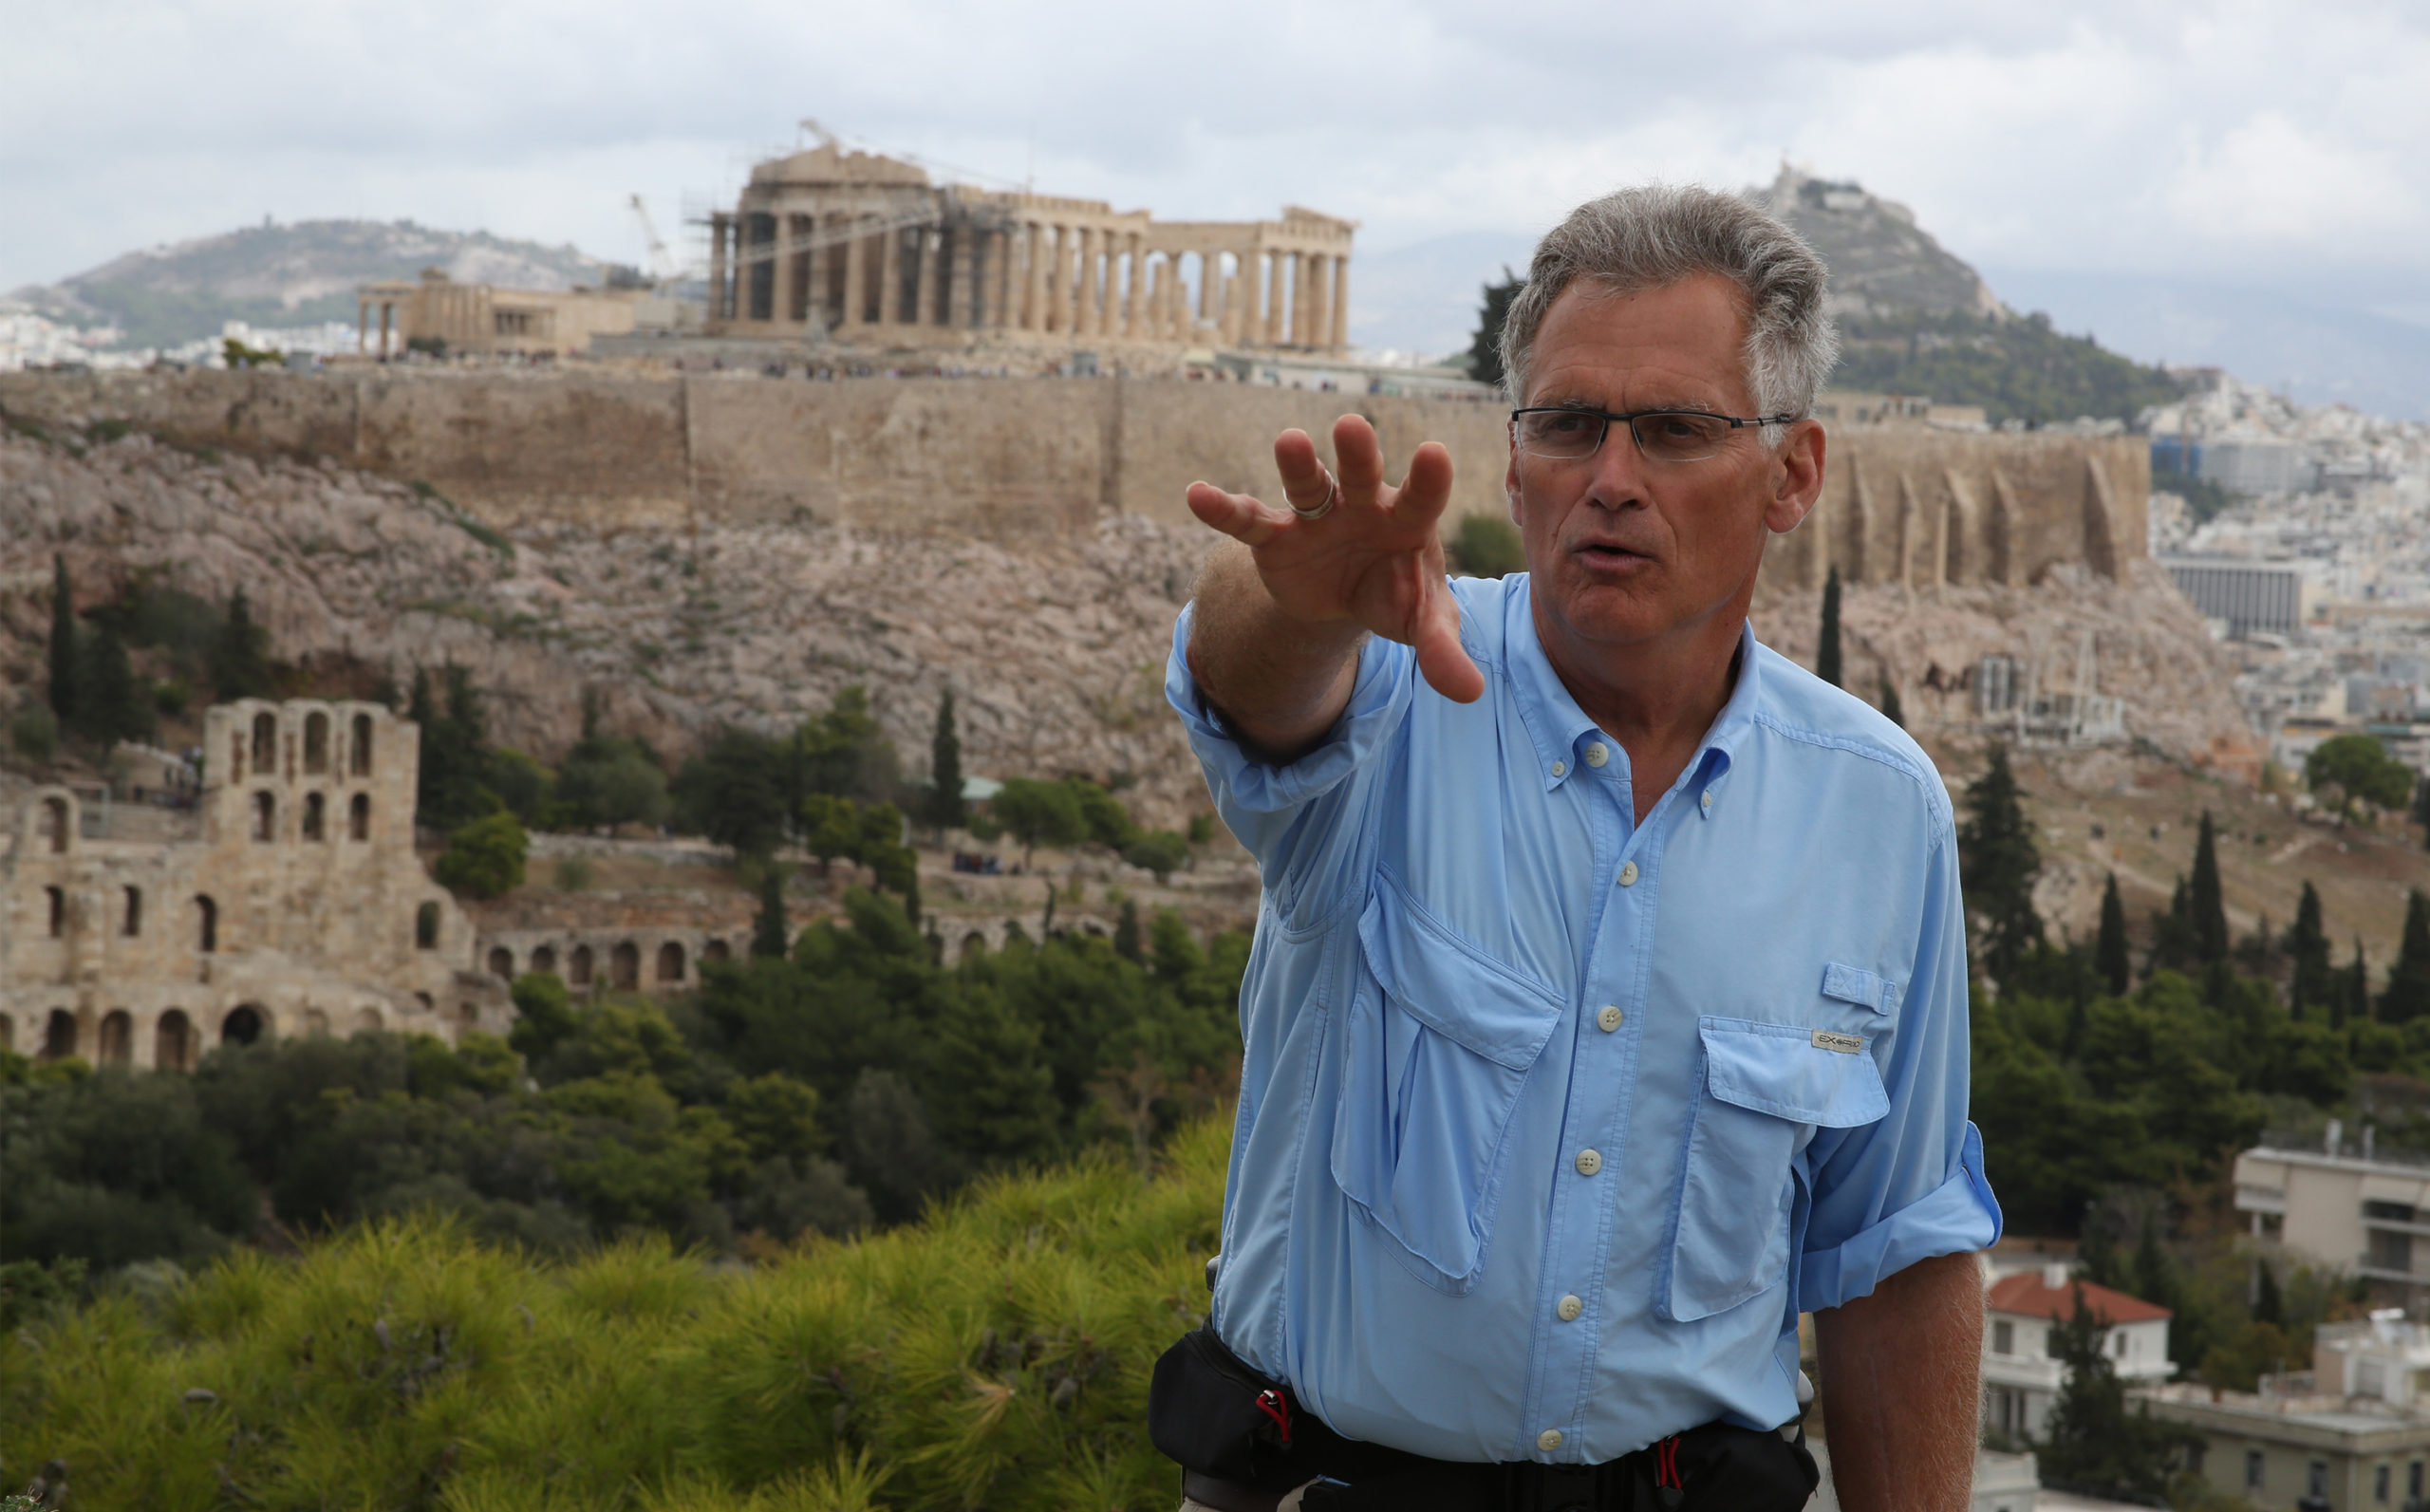 Bringing the Bible to life, Ray Vander Laan leads a tour in the Middle East